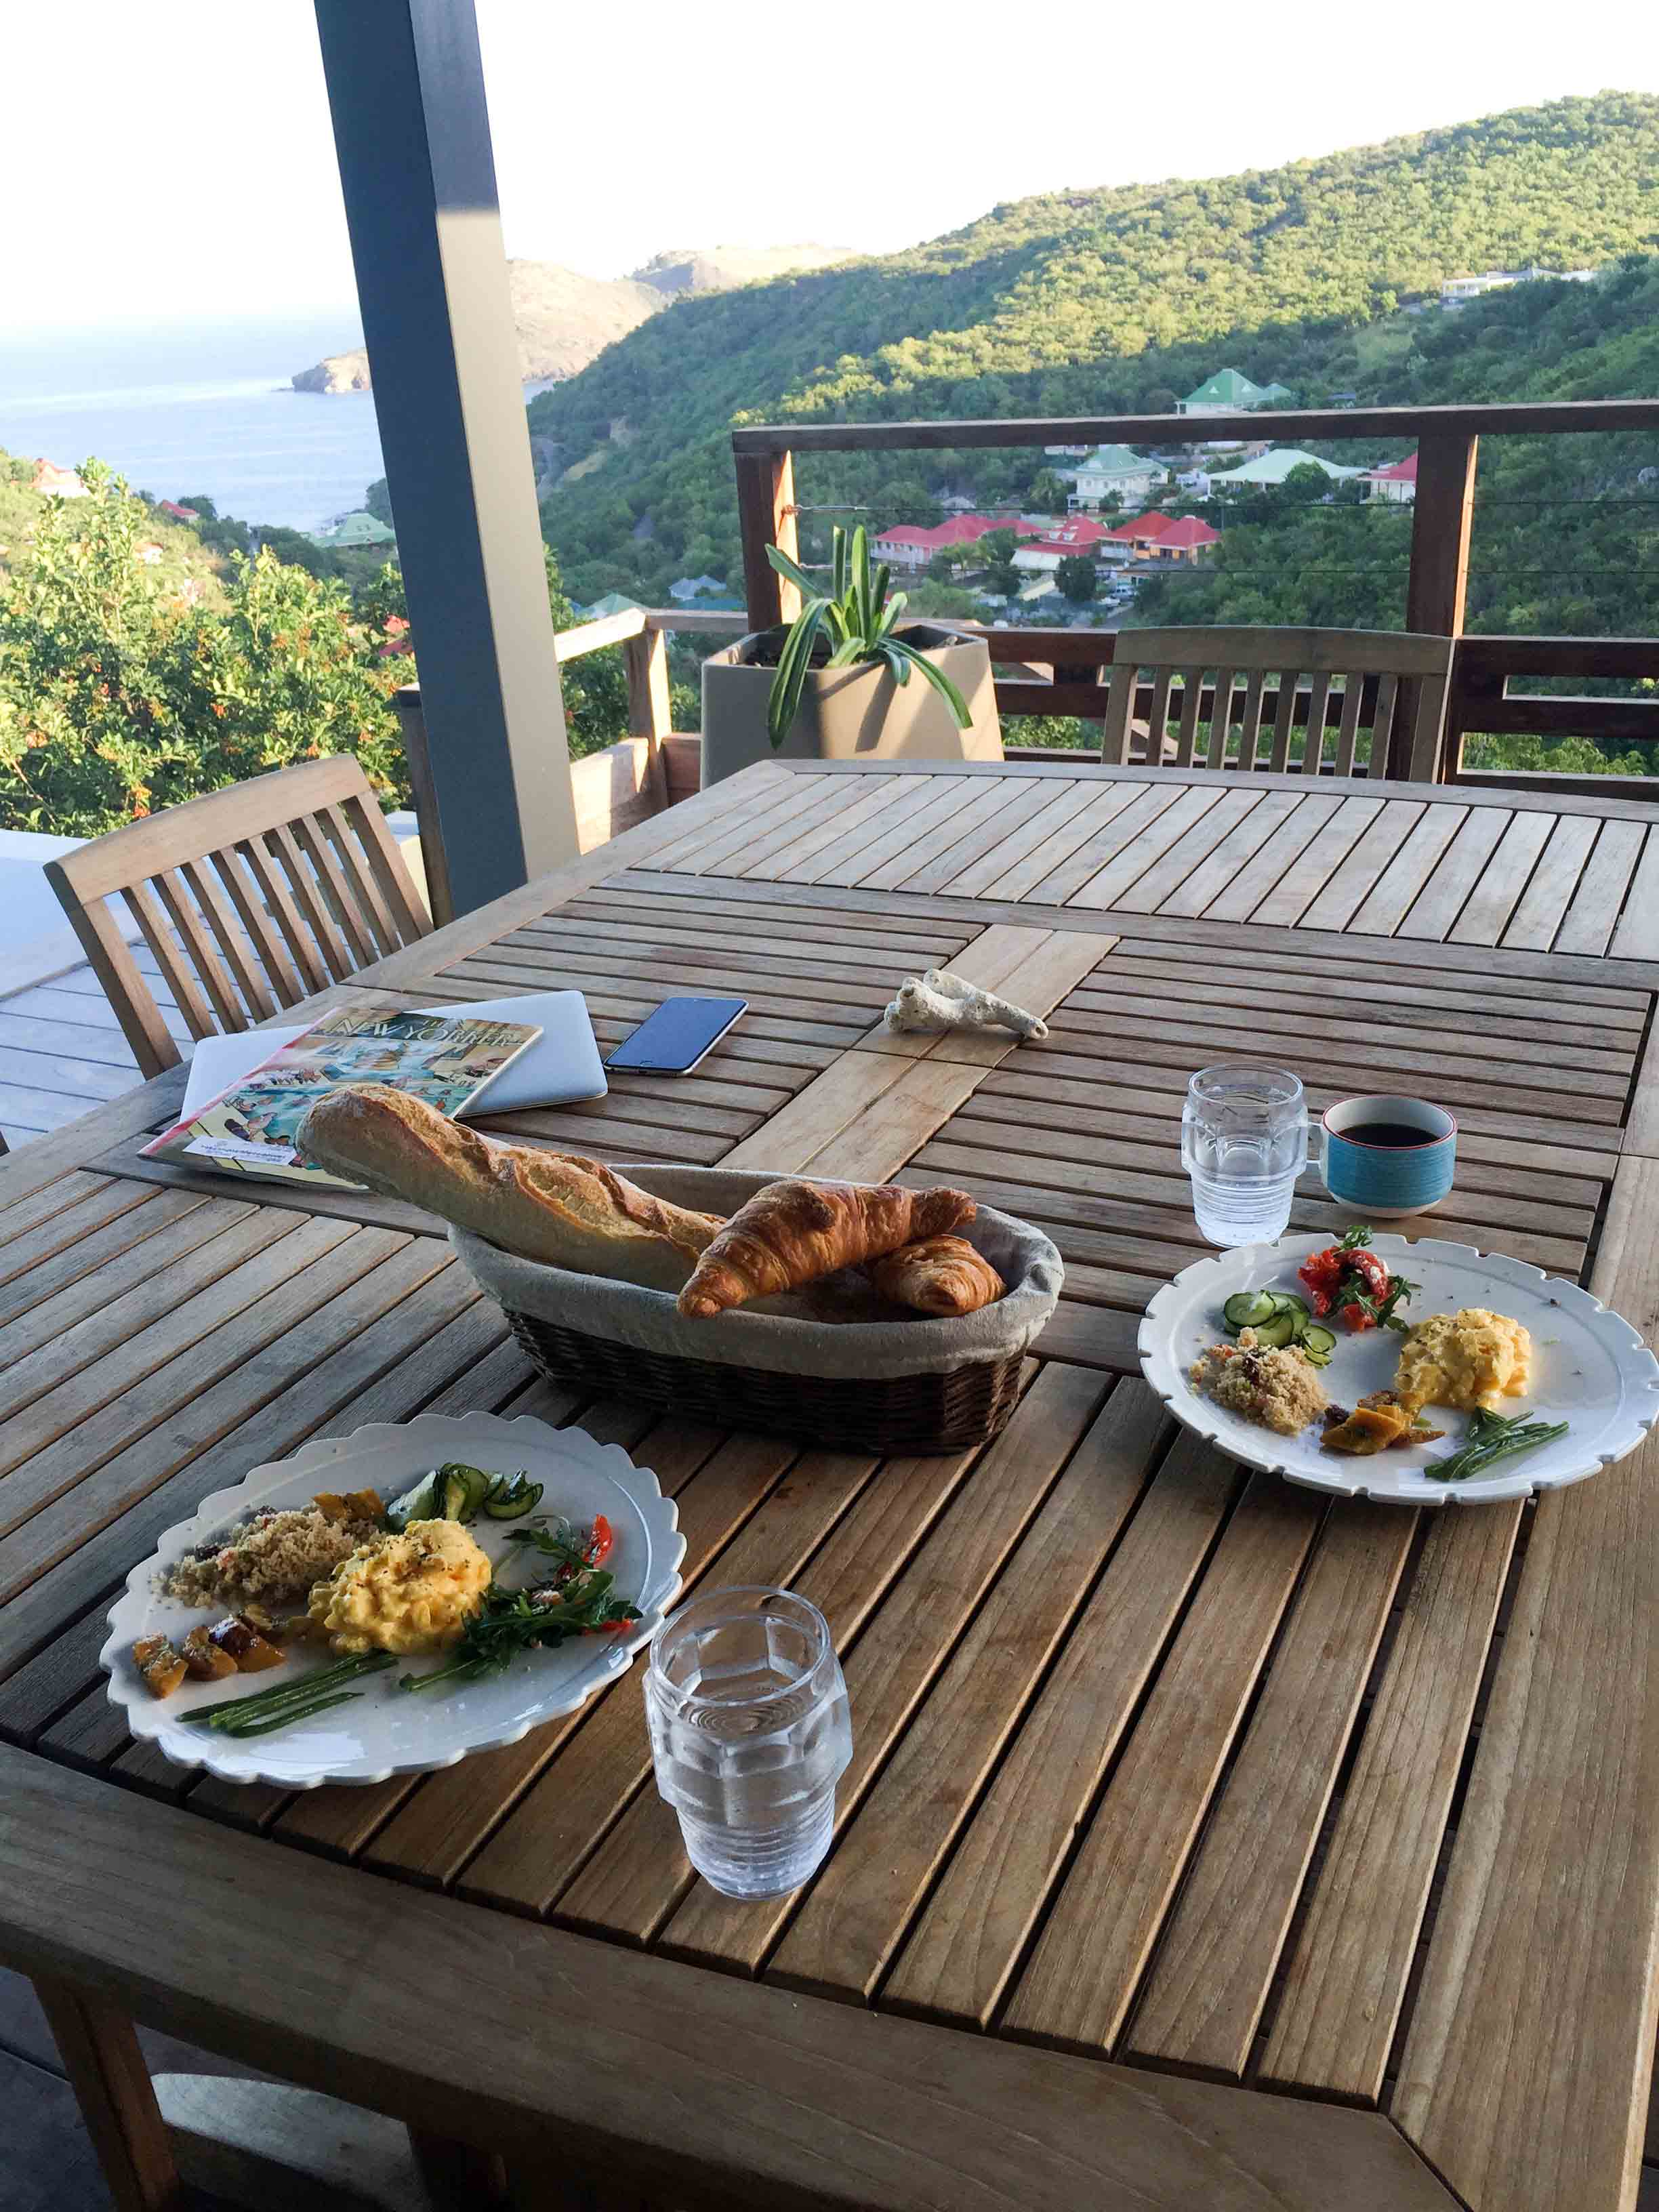 Breakfast on St. Barts - Eggs and Maya's To Go leftovers